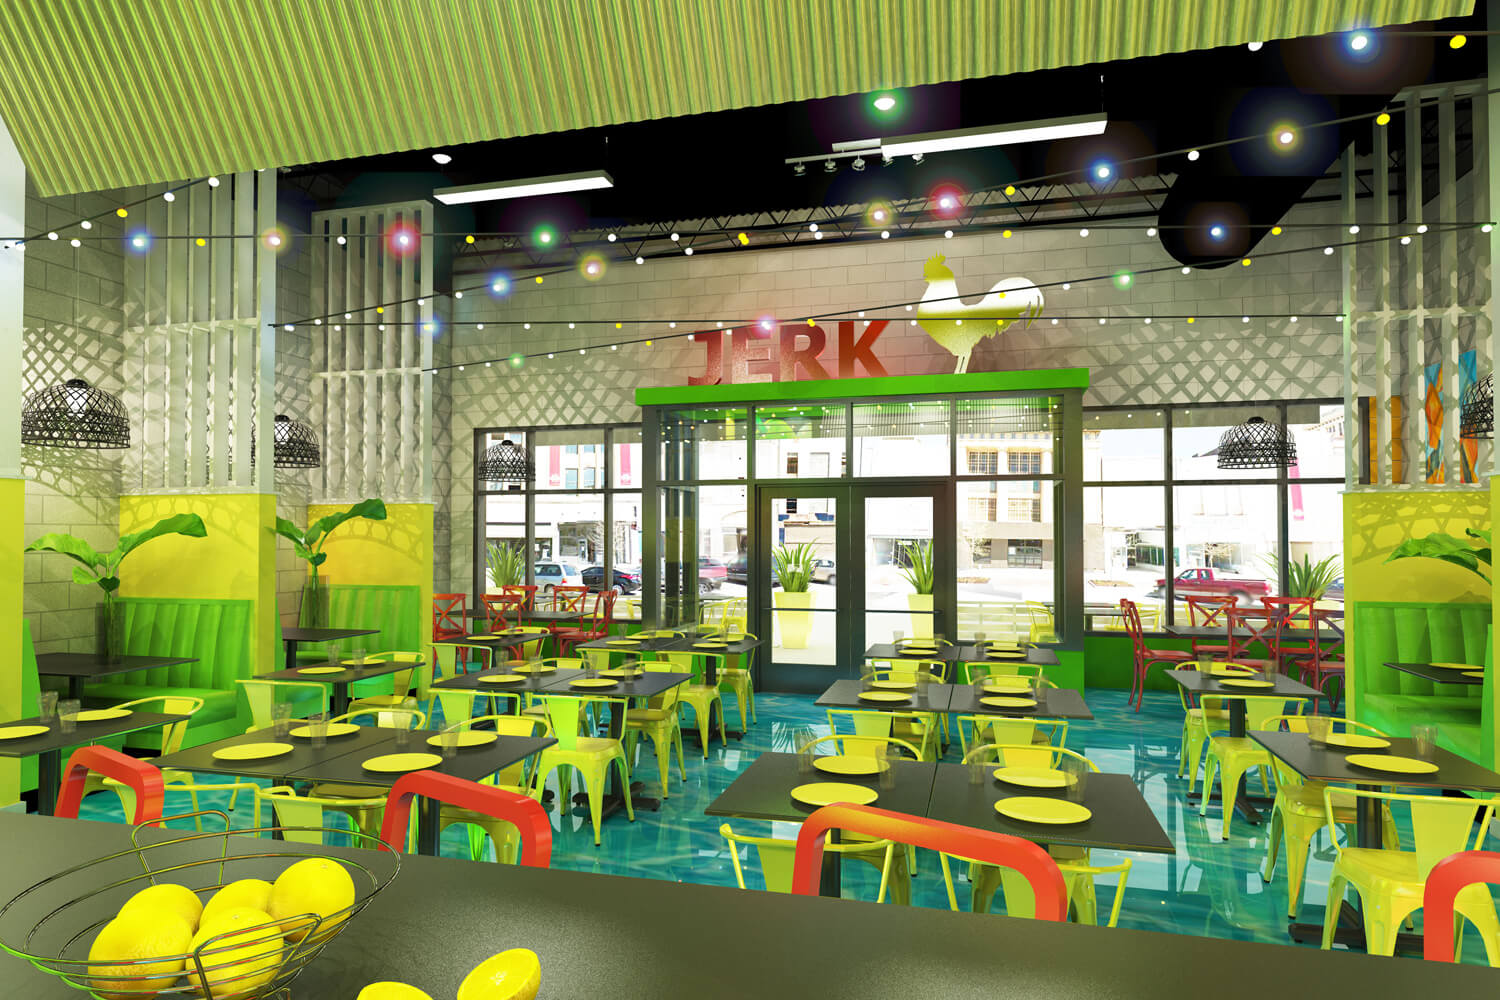 Island Delight Restaurant Designed by Foshee Architecture - Artist Depiction and Rendering of Interior of Seating Area